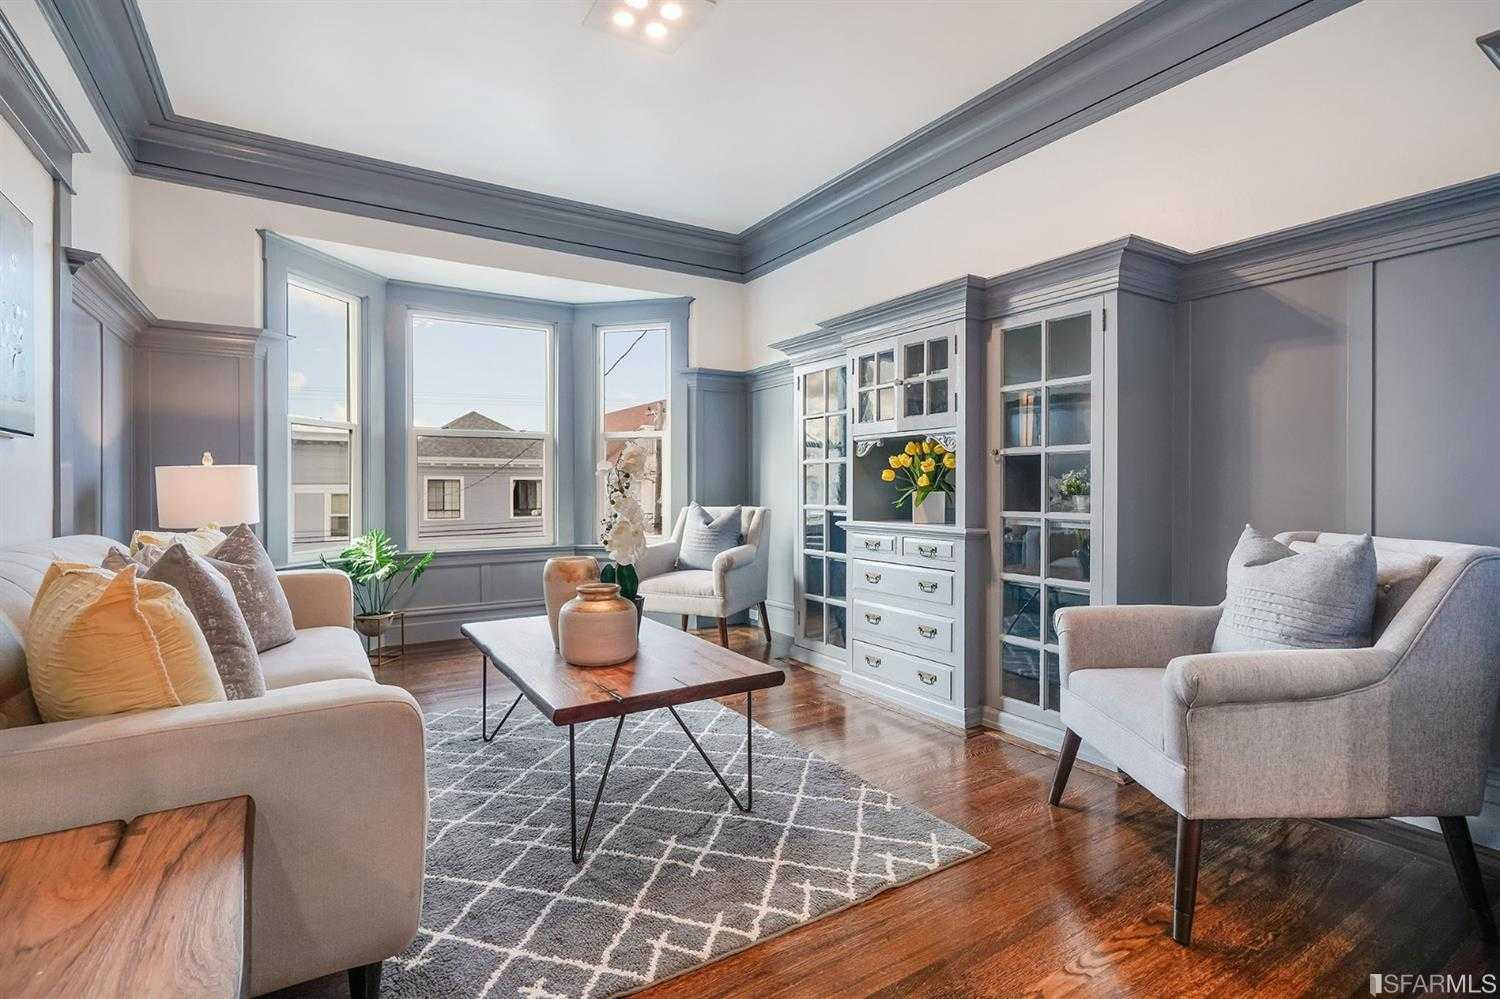 $1,429,000 - 3Br/2Ba -  for Sale in San Francisco